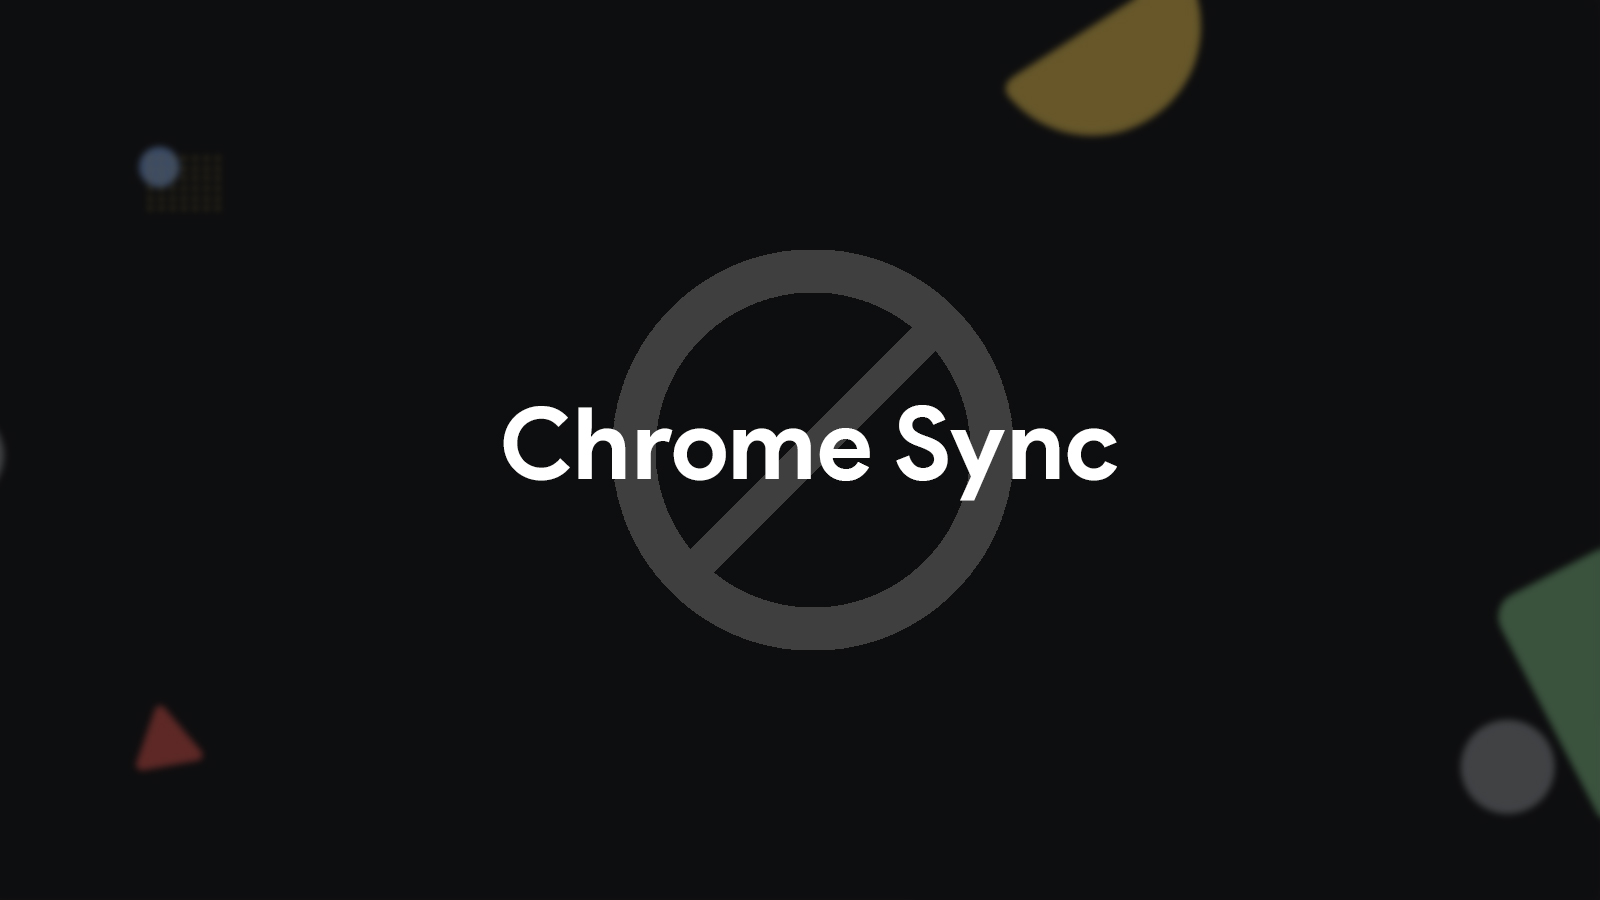 Google is removing the ability for Chromium browsers to accidentally sync Chrome user data